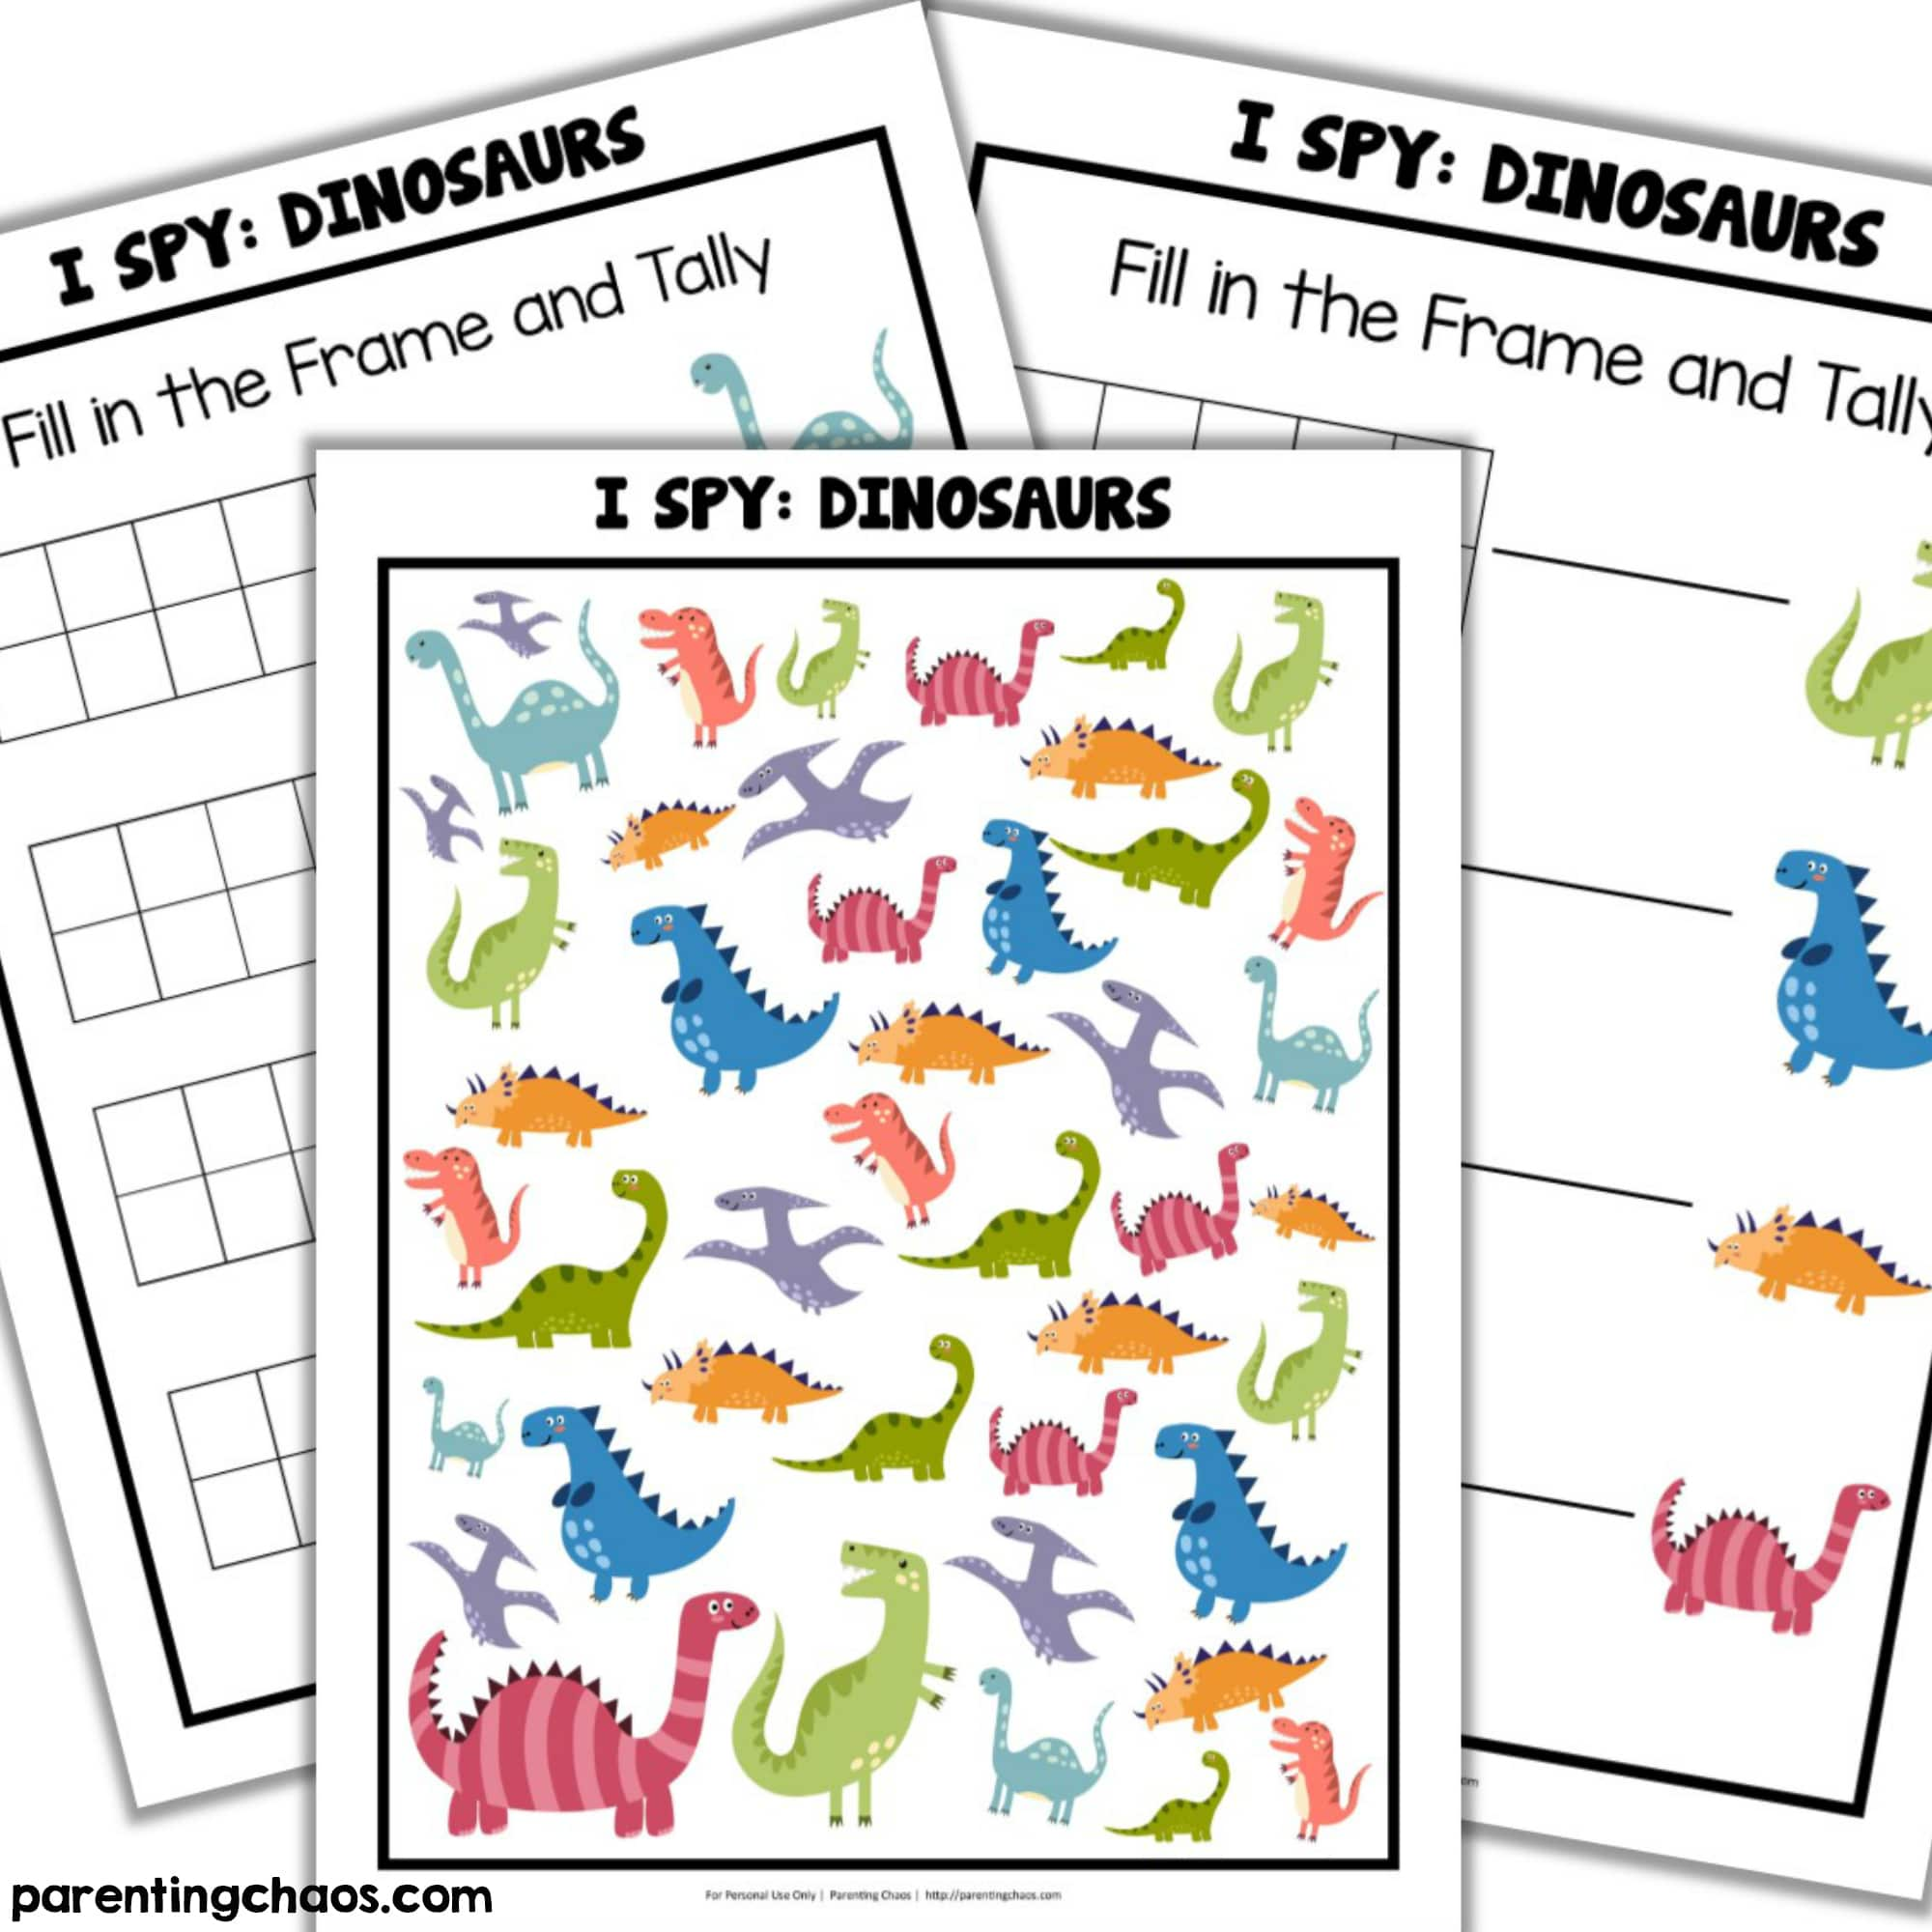 photograph regarding I Spy Printable titled Dinosaurs I Spy Printable ⋆ Parenting Chaos